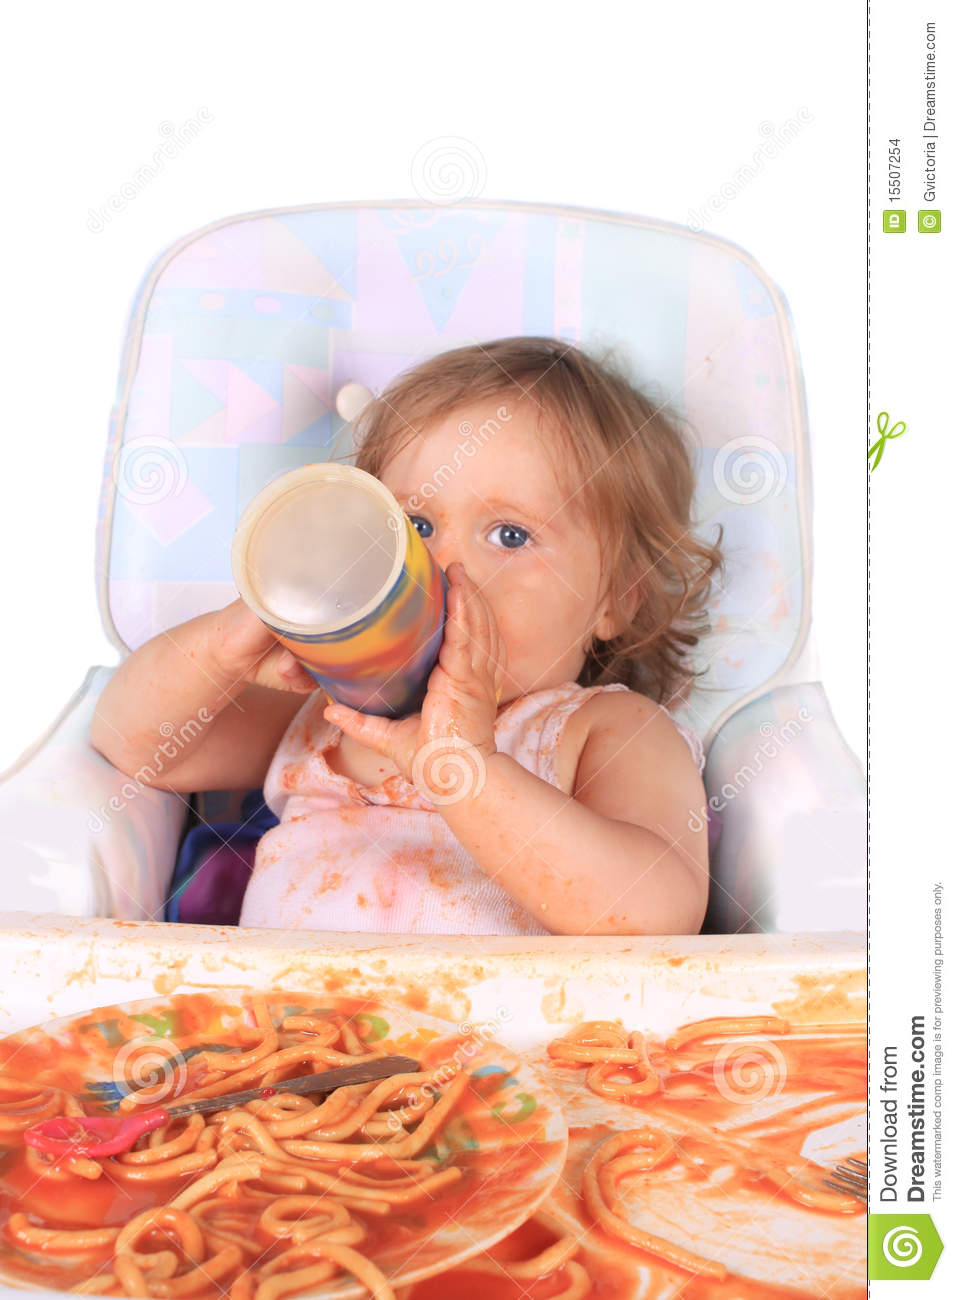 Baby Milk Cup Drinking